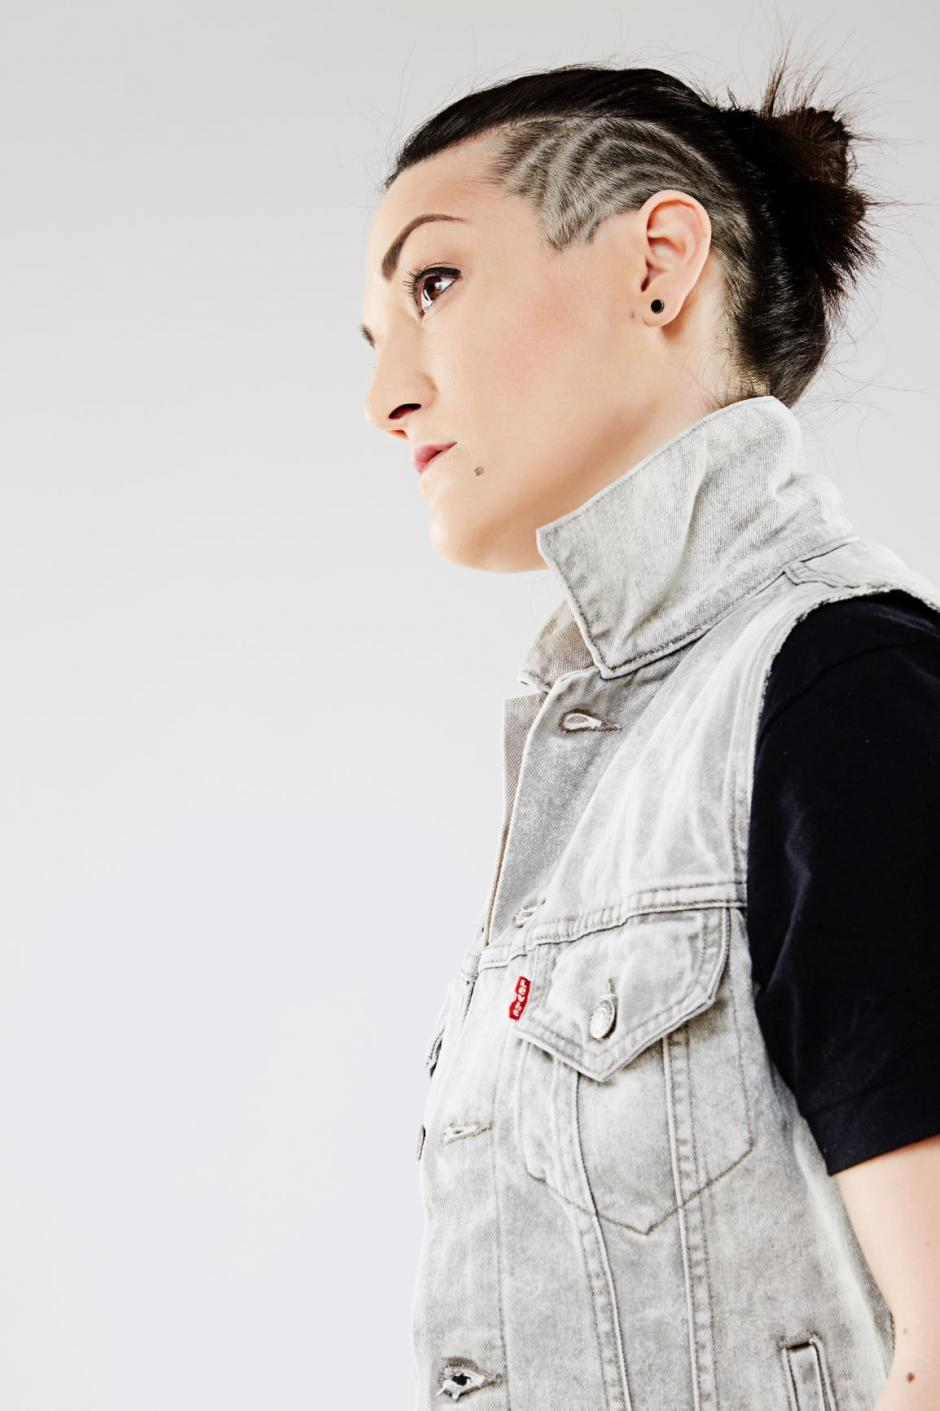 Photo of program faculty, Teija Kasahara, in side profile with head tilted away